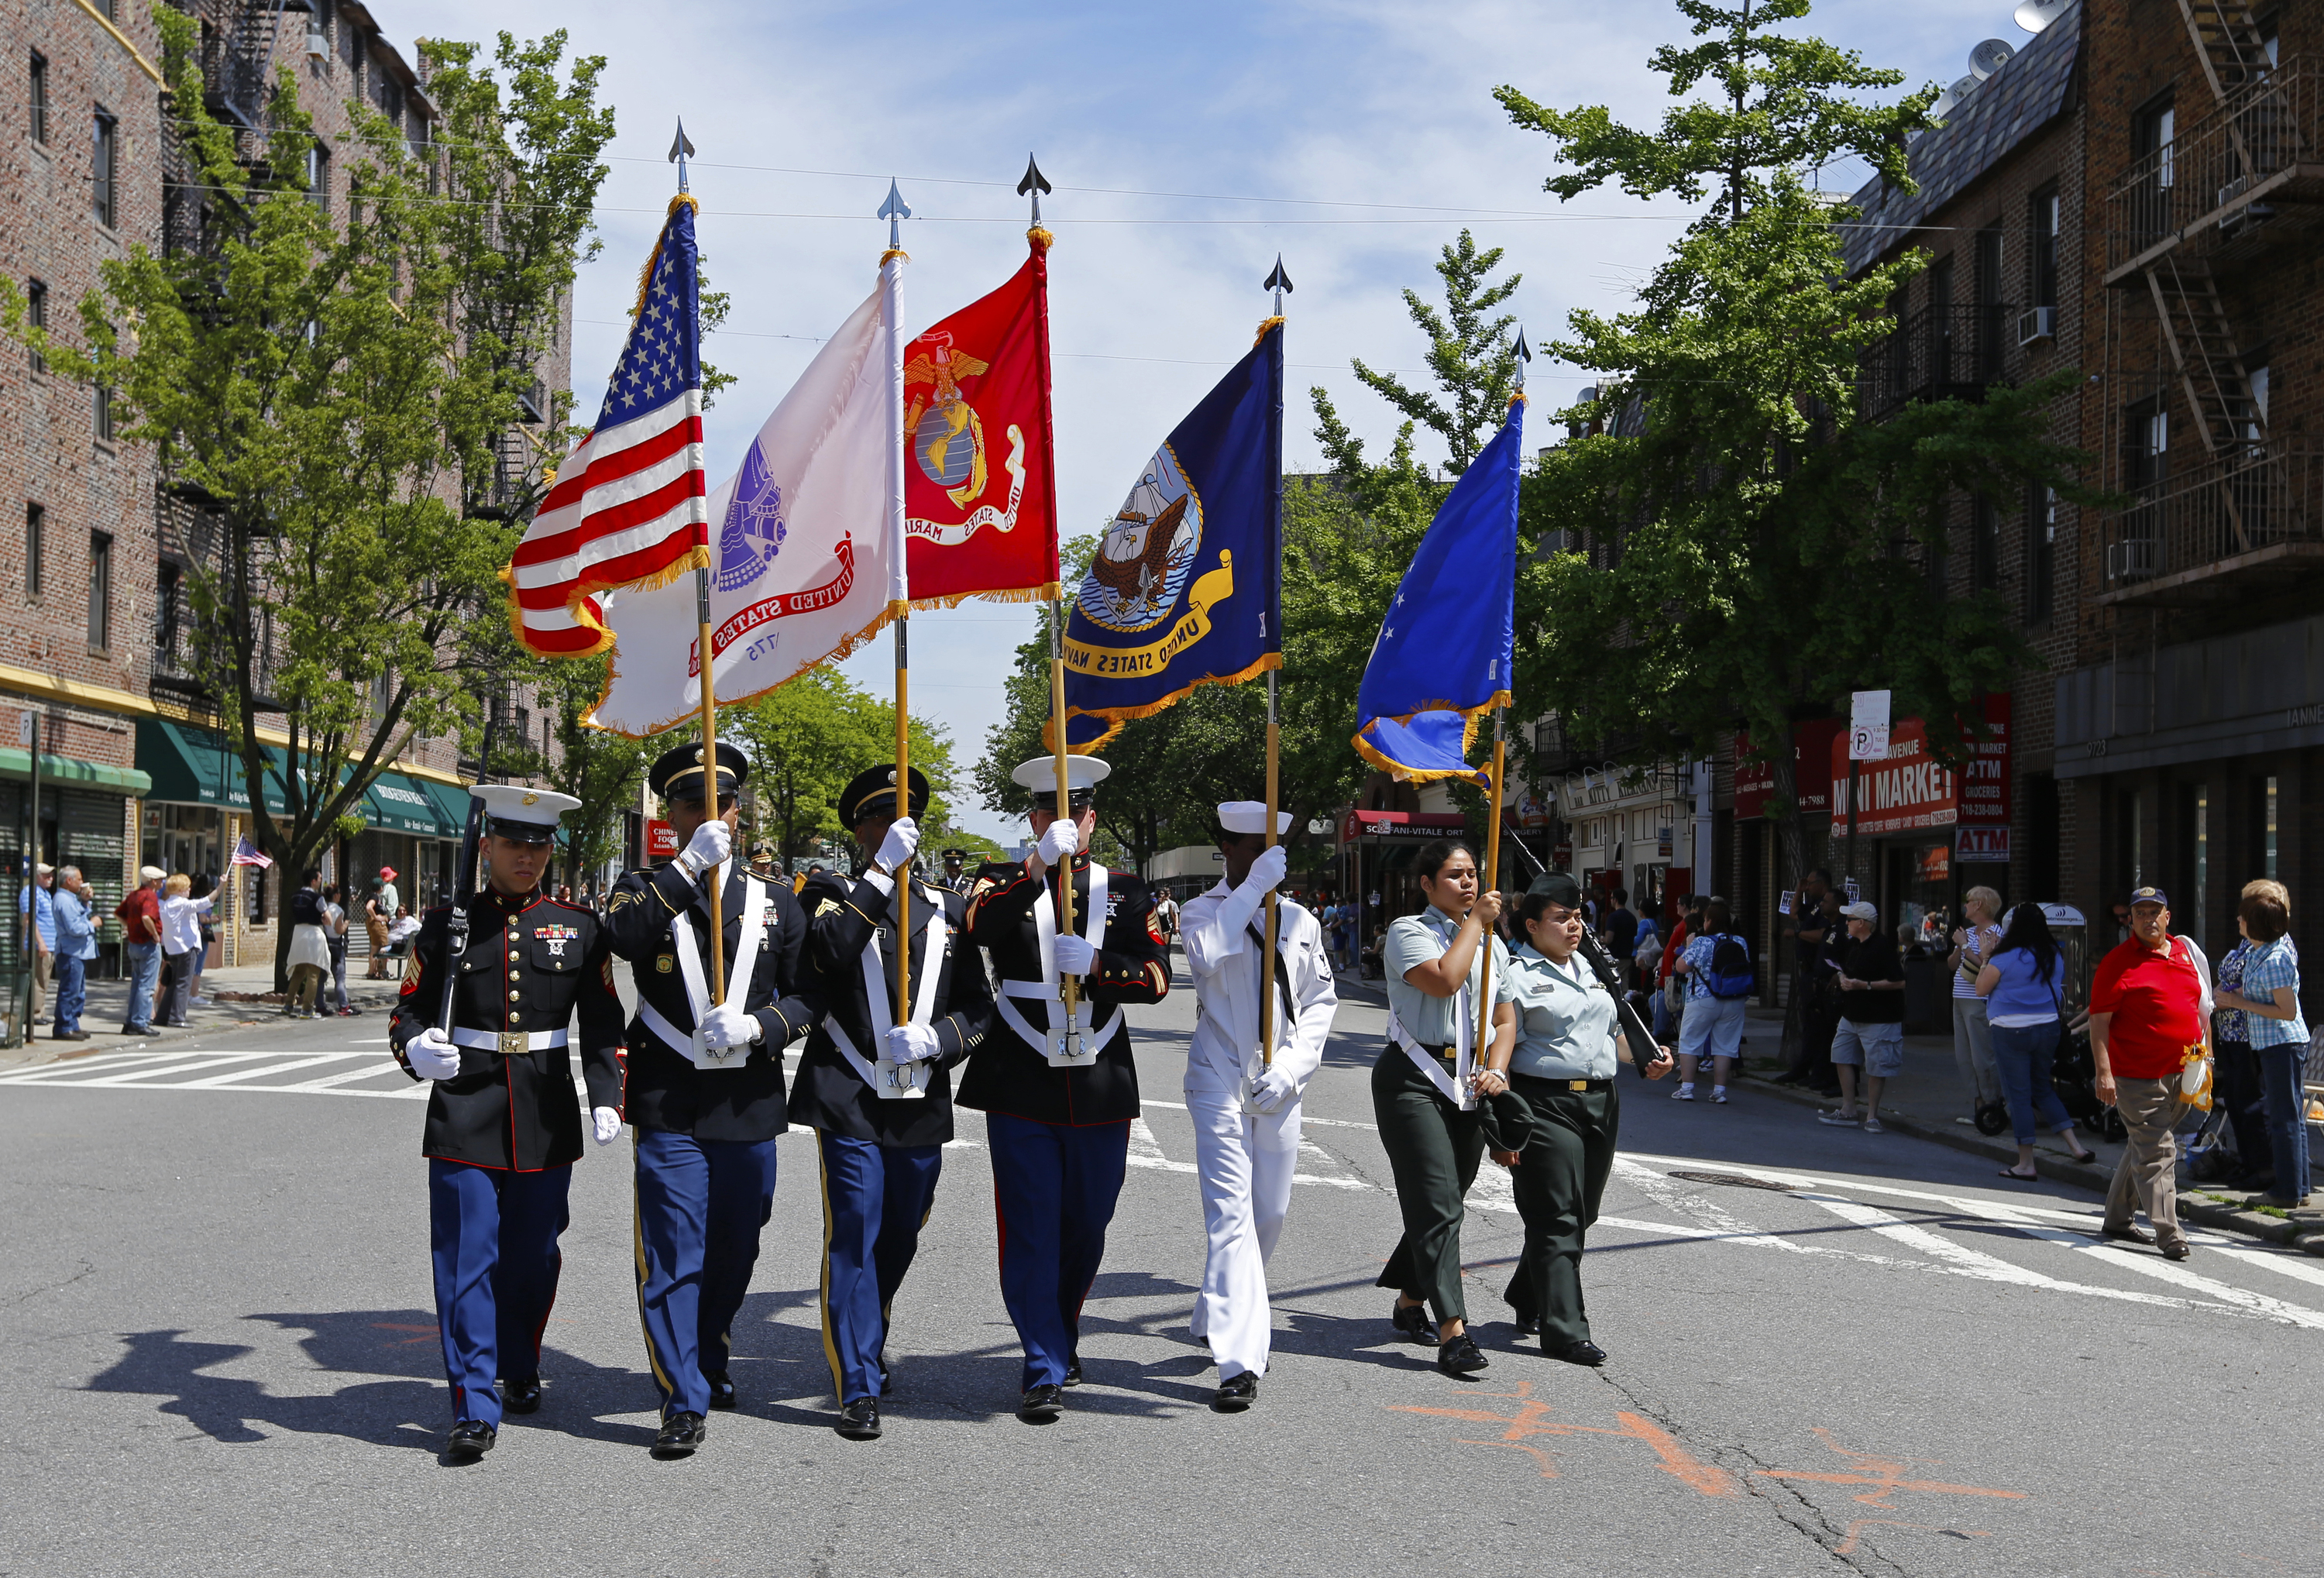 Guide to the Memorial Day Parade in NYC